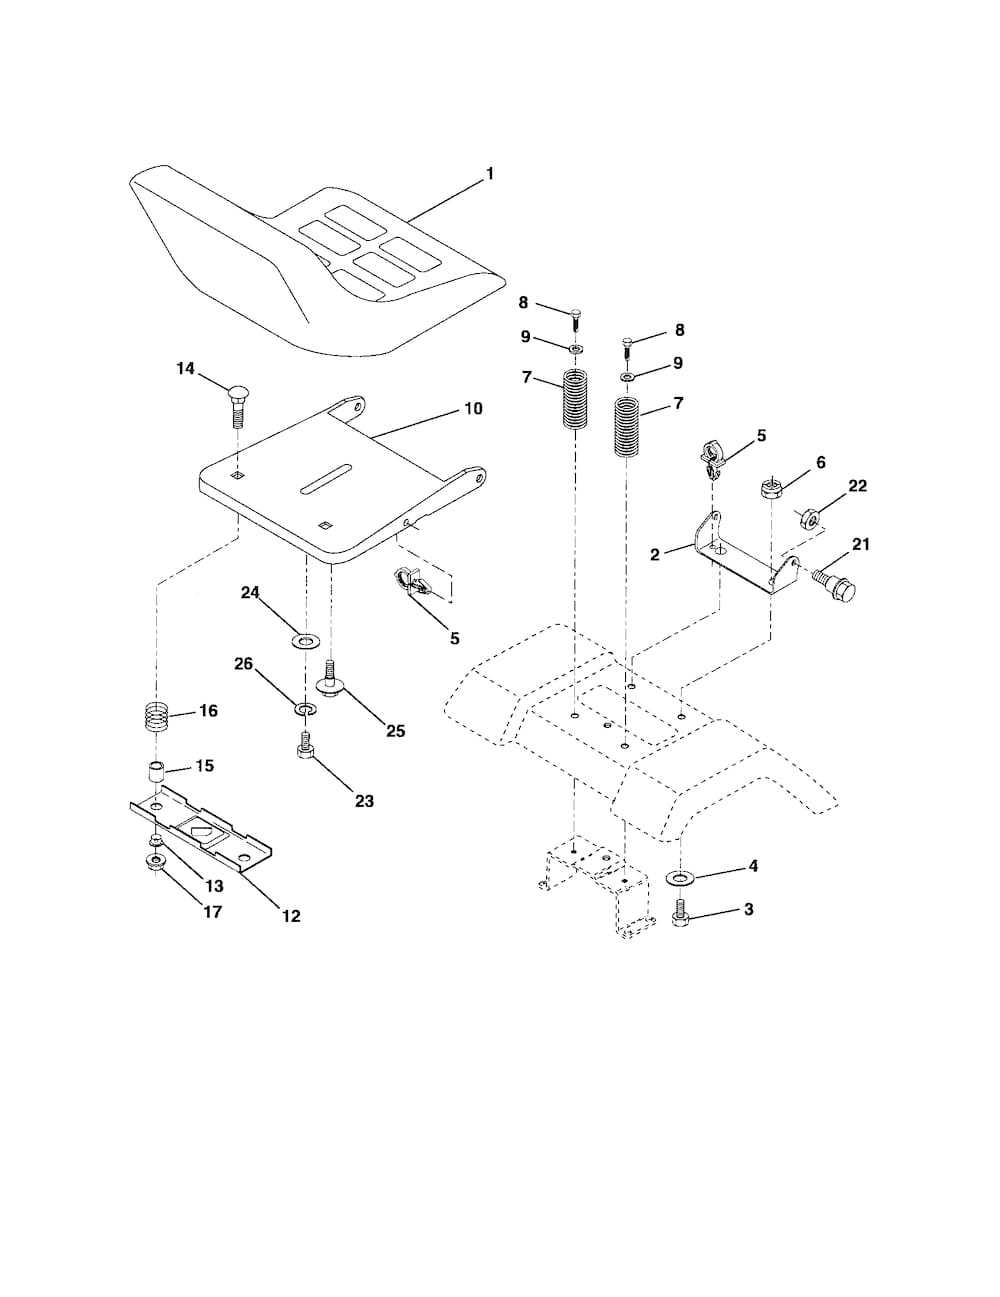 ... and Parts List for POULAN Riding-Mower-Tractor-Parts model # PD15538LT